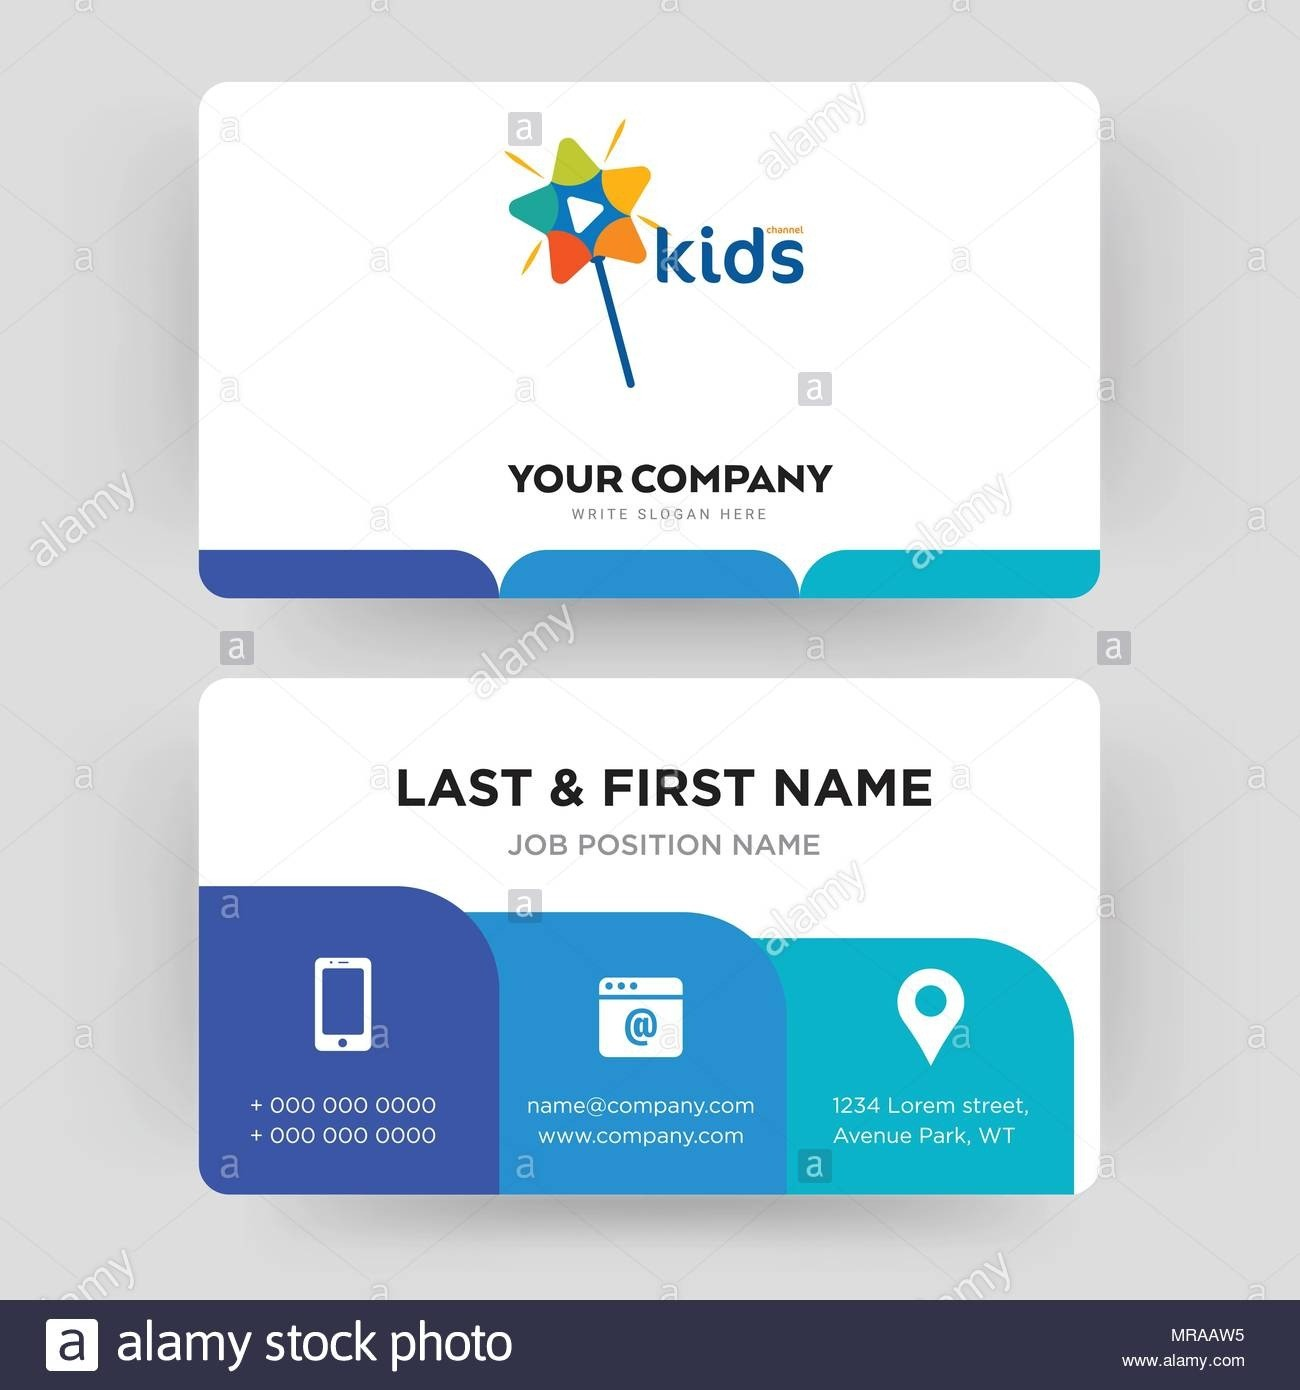 Kids Channel, Business Card Design Template, Visiting For Regarding Id Card Template For Kids